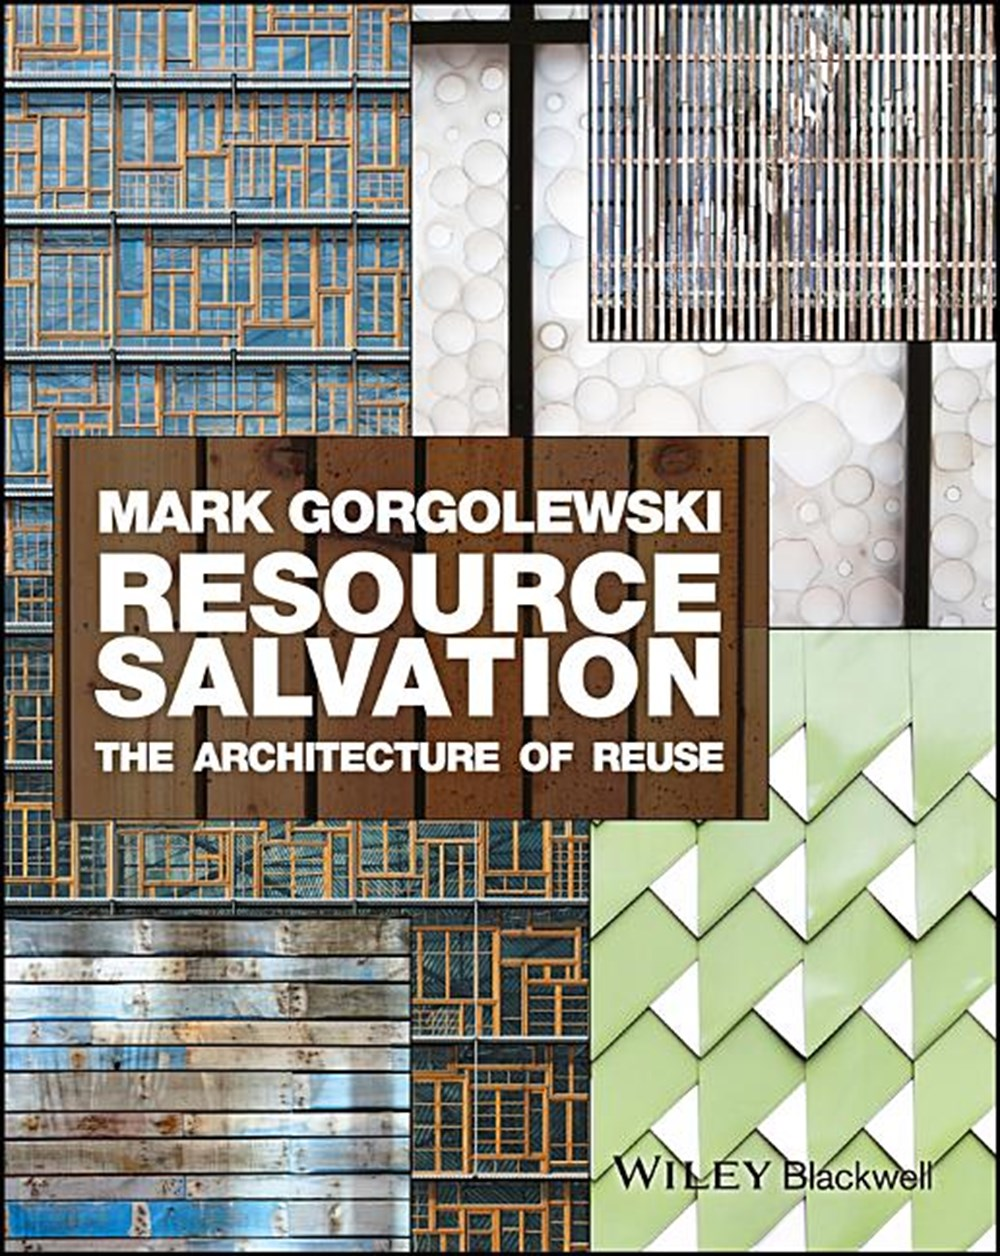 Resource Salvation The Architecture of Reuse